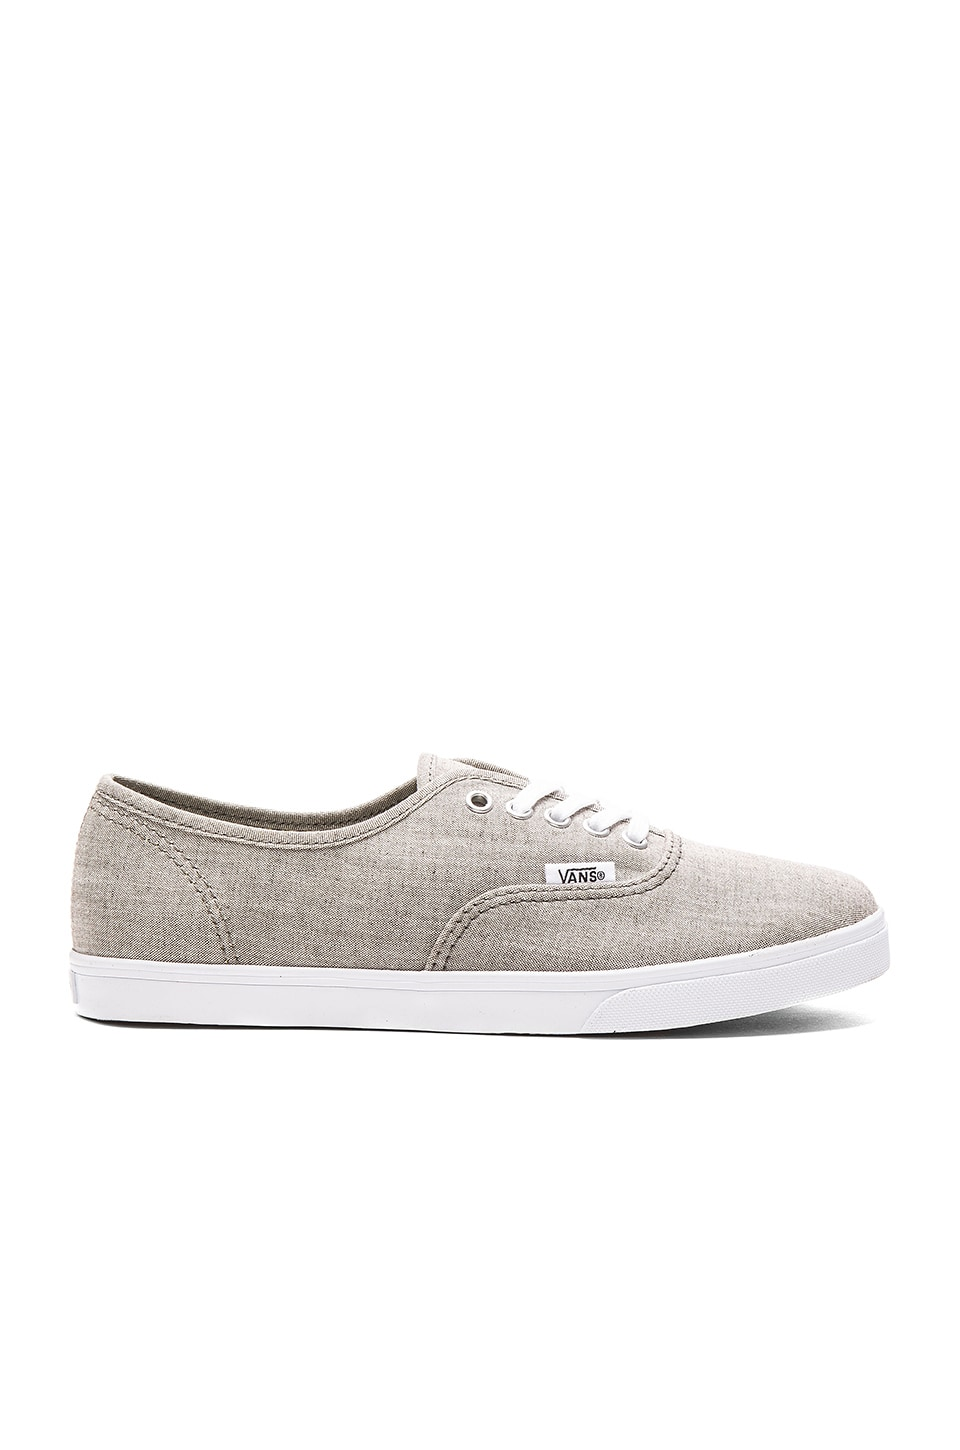 neue Styling Schuhe Vans Floral Chambray Authentic Lo Pro